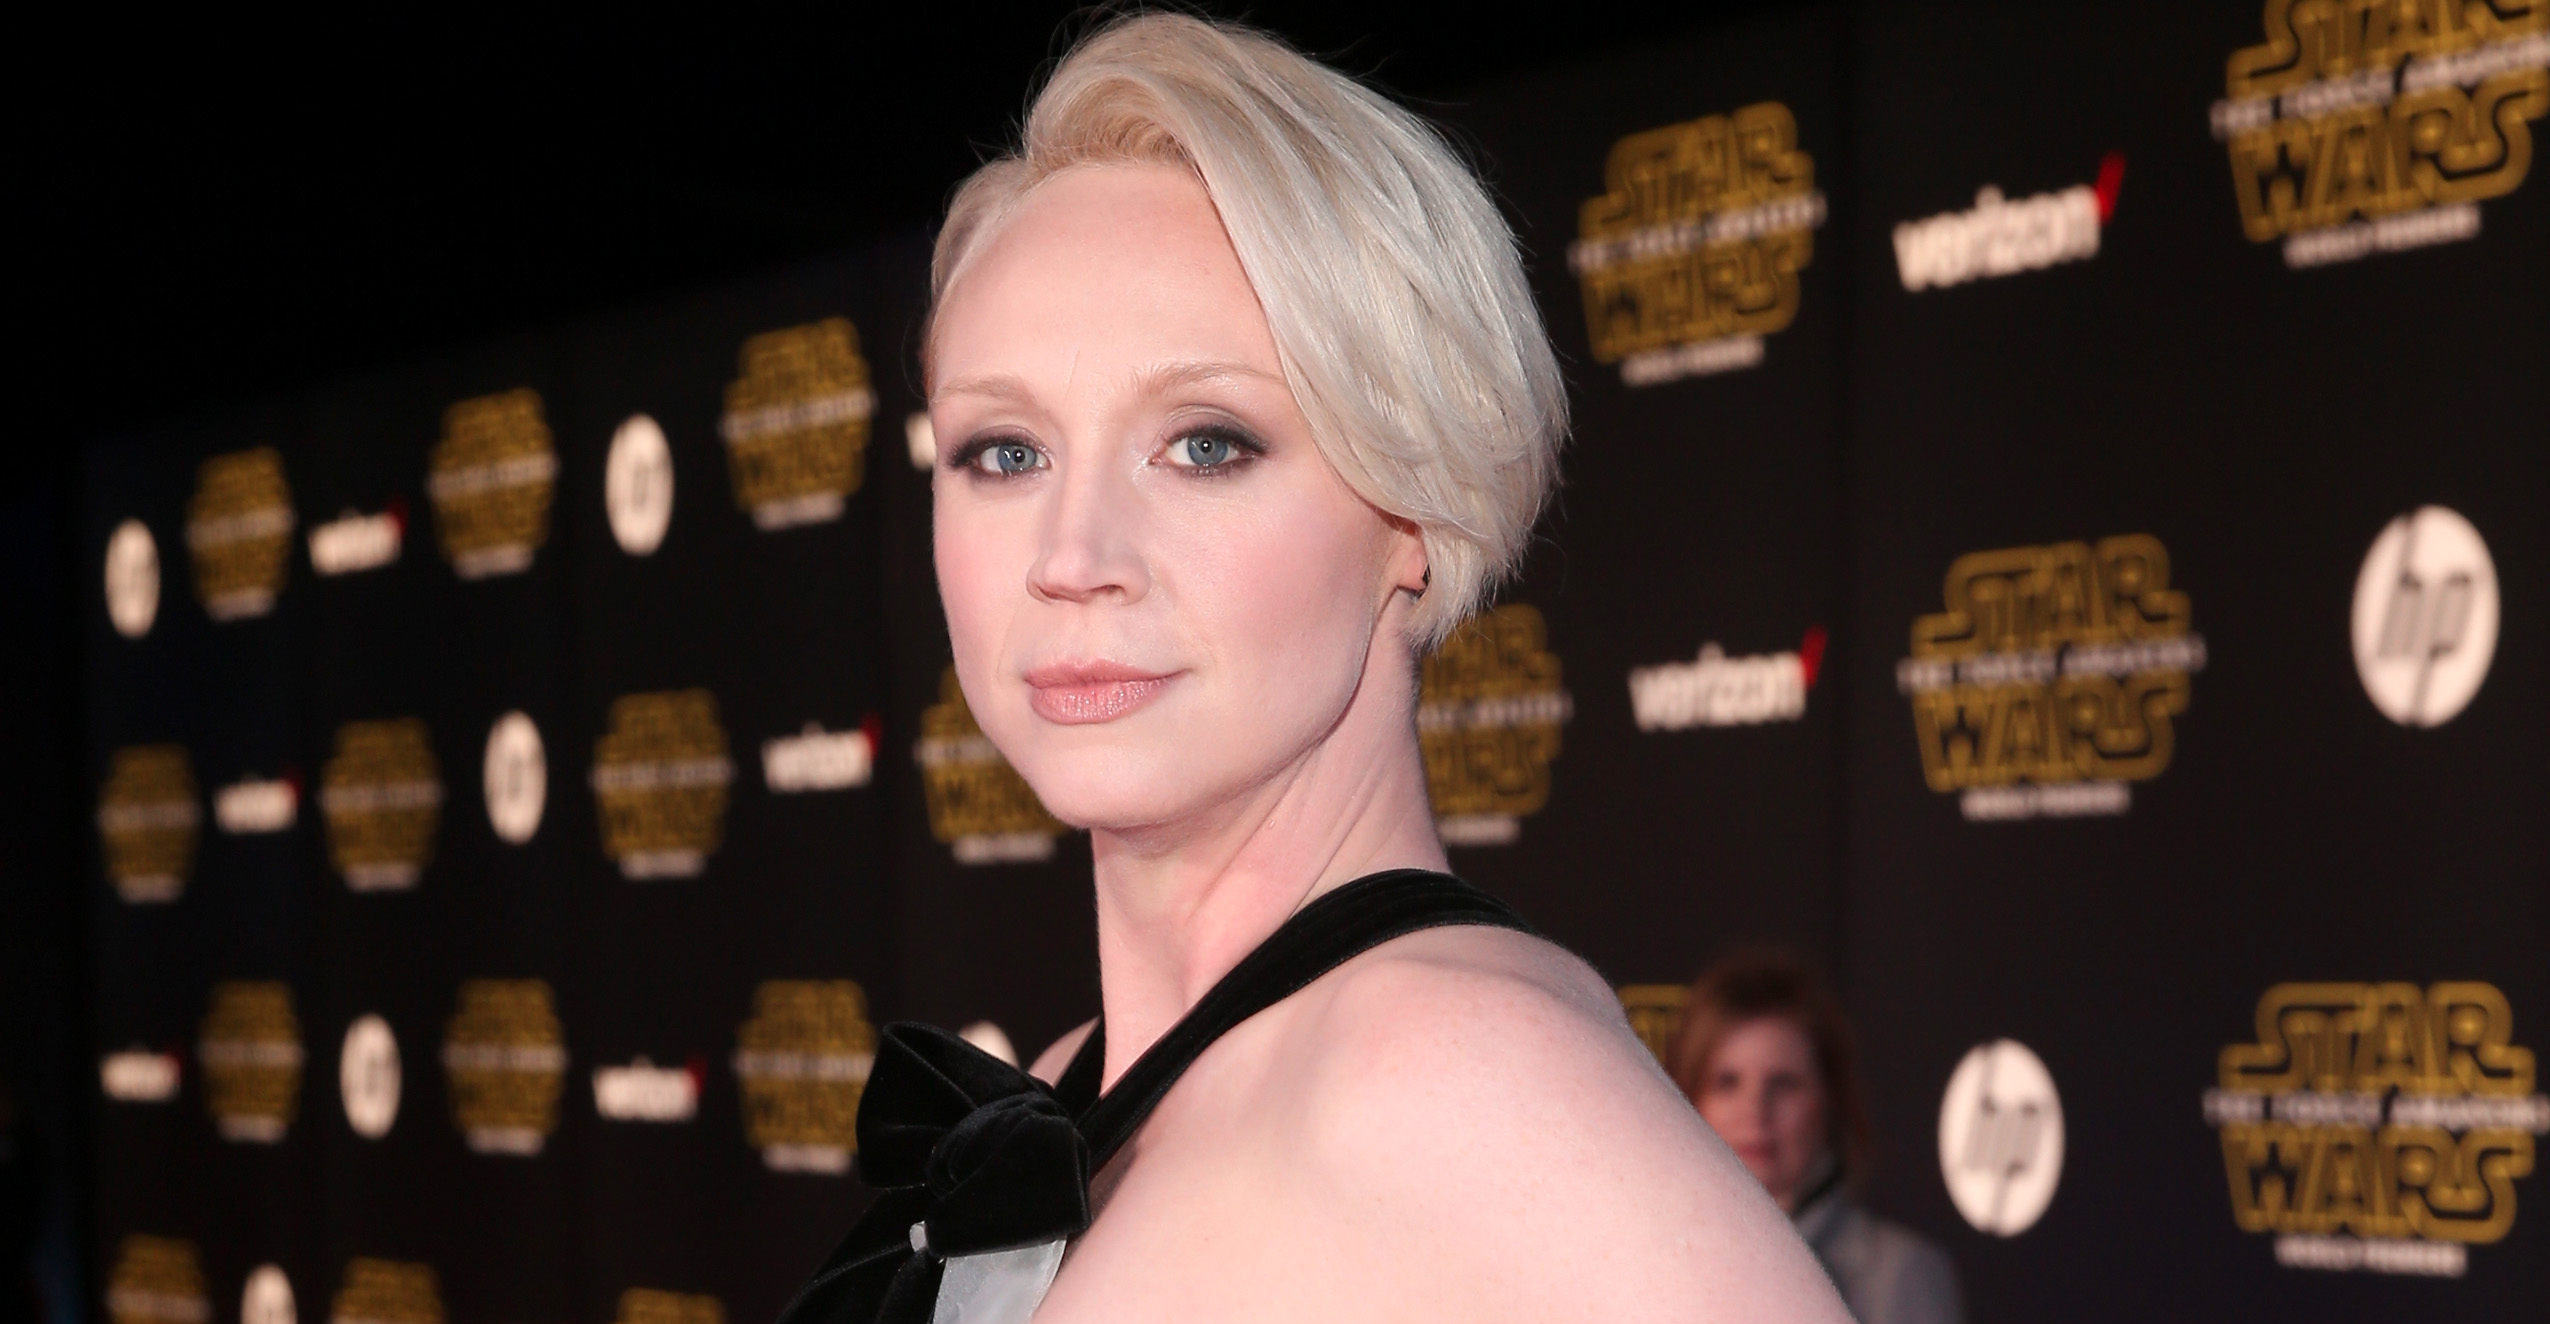 stormtrooper-gwendoline-christie-is-making-a-fool-of-everyone-who-said-shes-too-tall